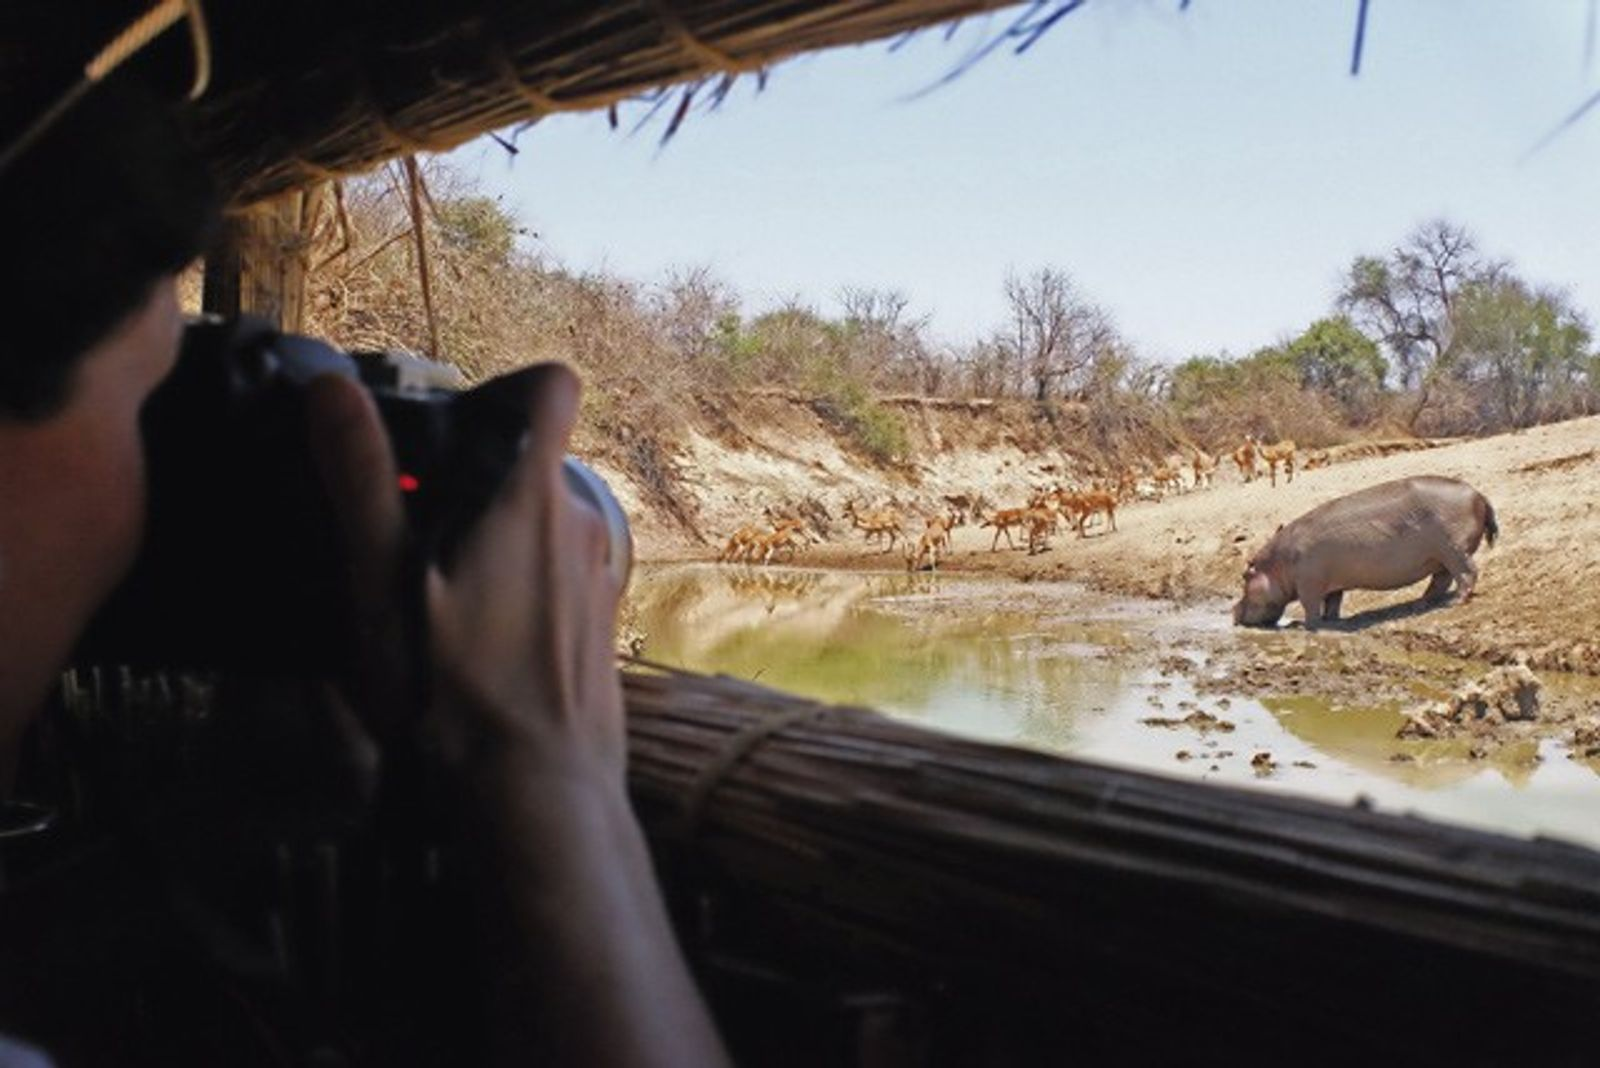 Zambia: Watching wildlife from a hide